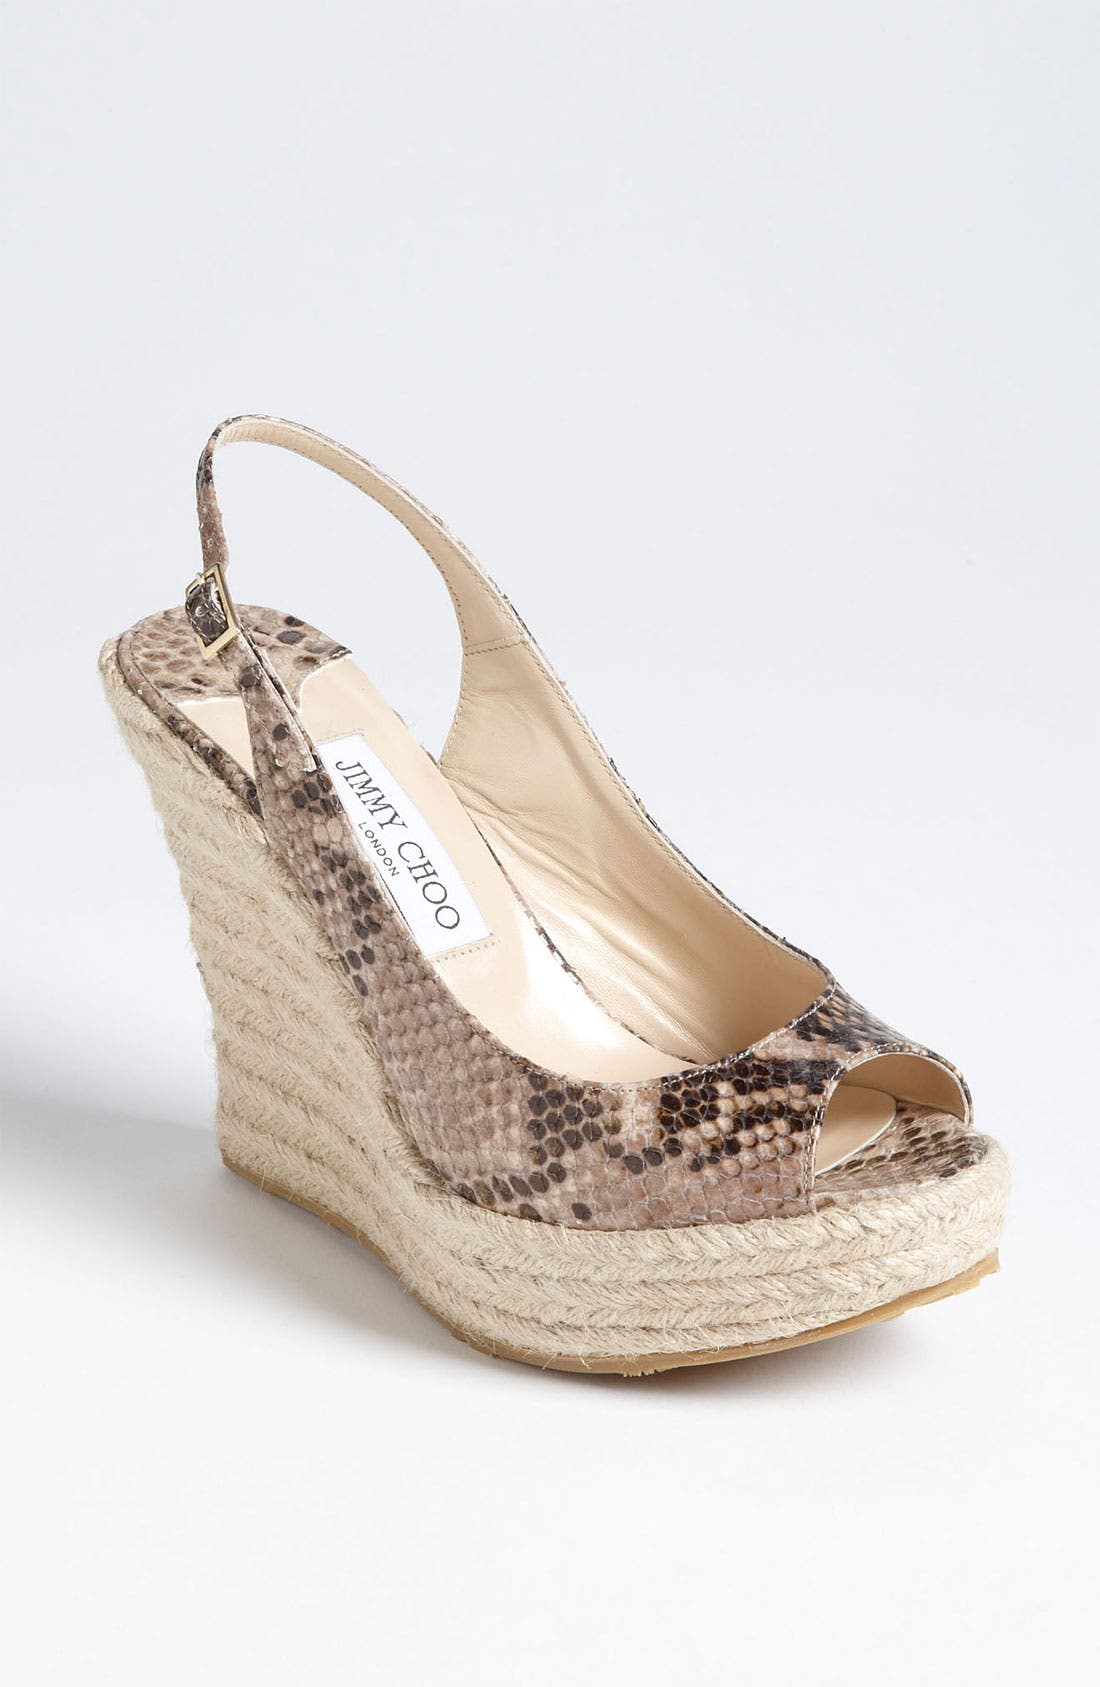 Main Image - Jimmy Choo 'Polar' Wedge Sandal